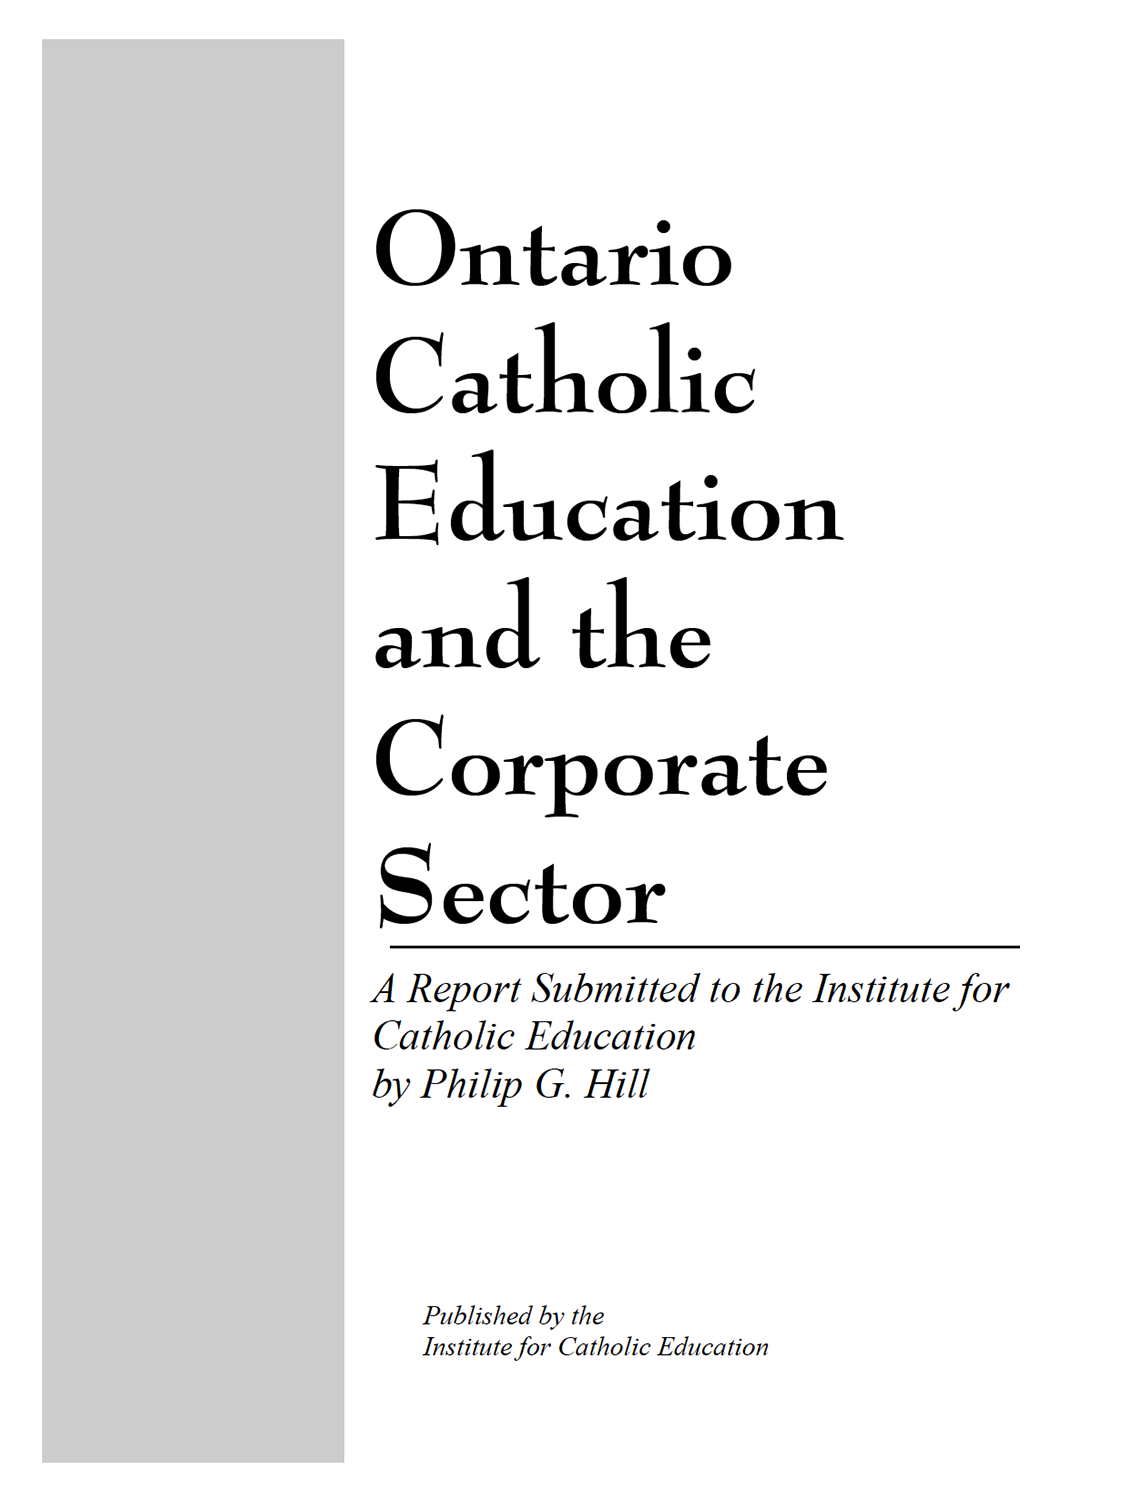 Ontario Catholic Education and the Corporate Sector